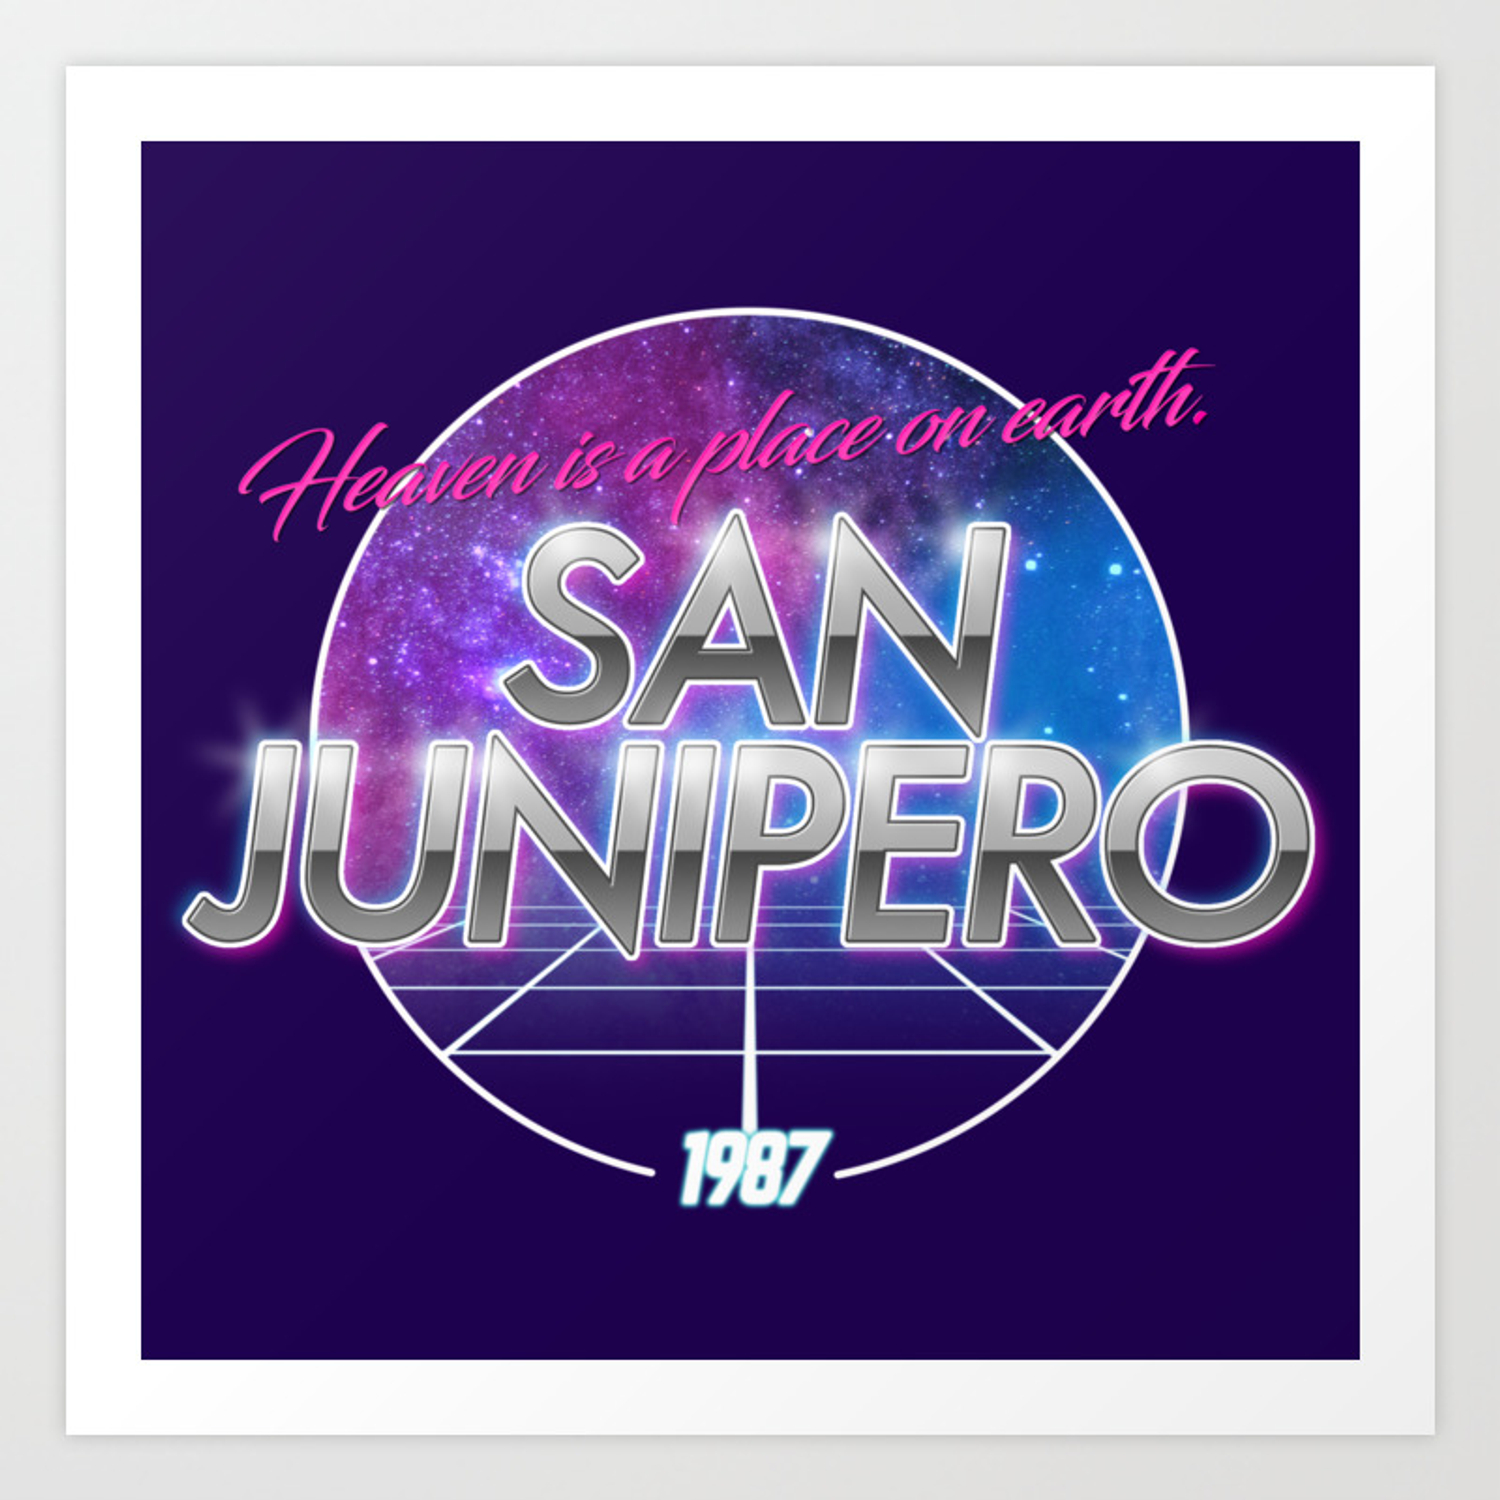 dddaaffdd San Junipero - Black Mirror Art Print by jliogrossi | Society6